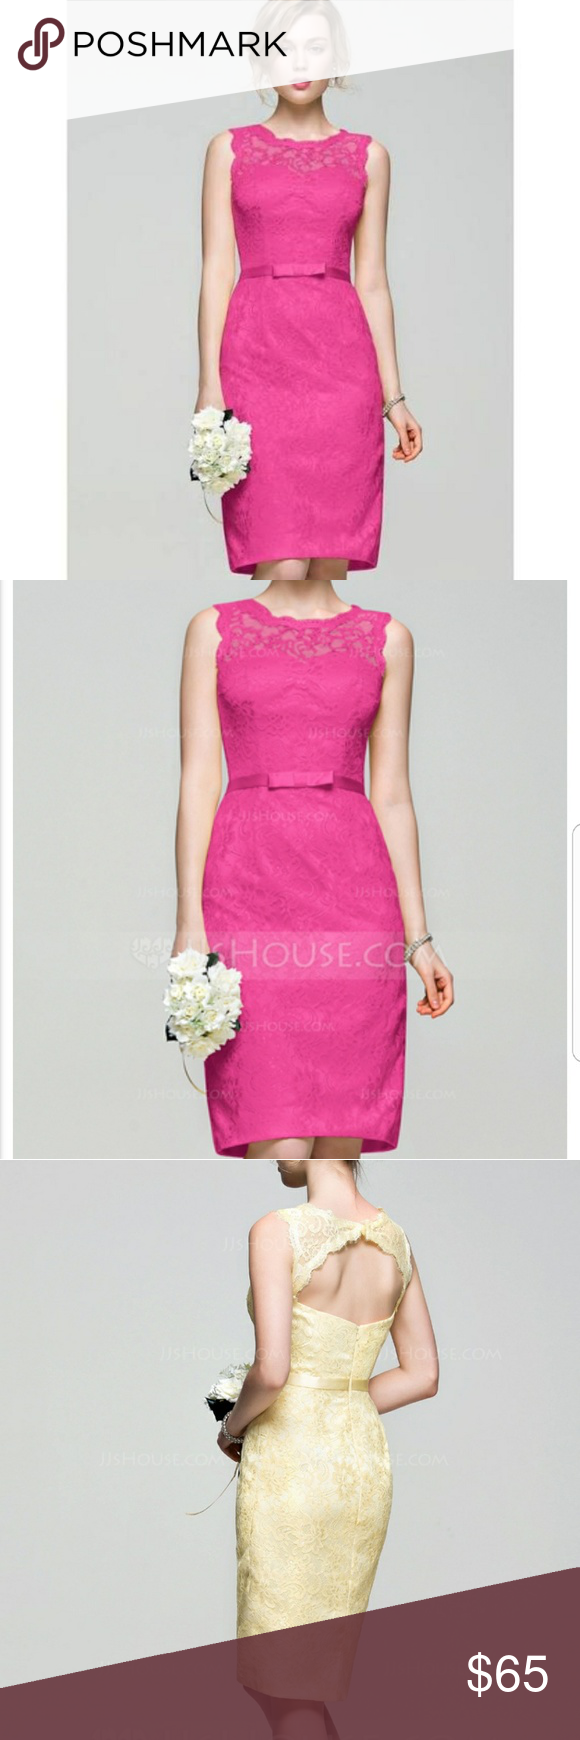 💖 jj\'s house pink lace sheath dress 💖 | Lace sheath dress, Columns ...